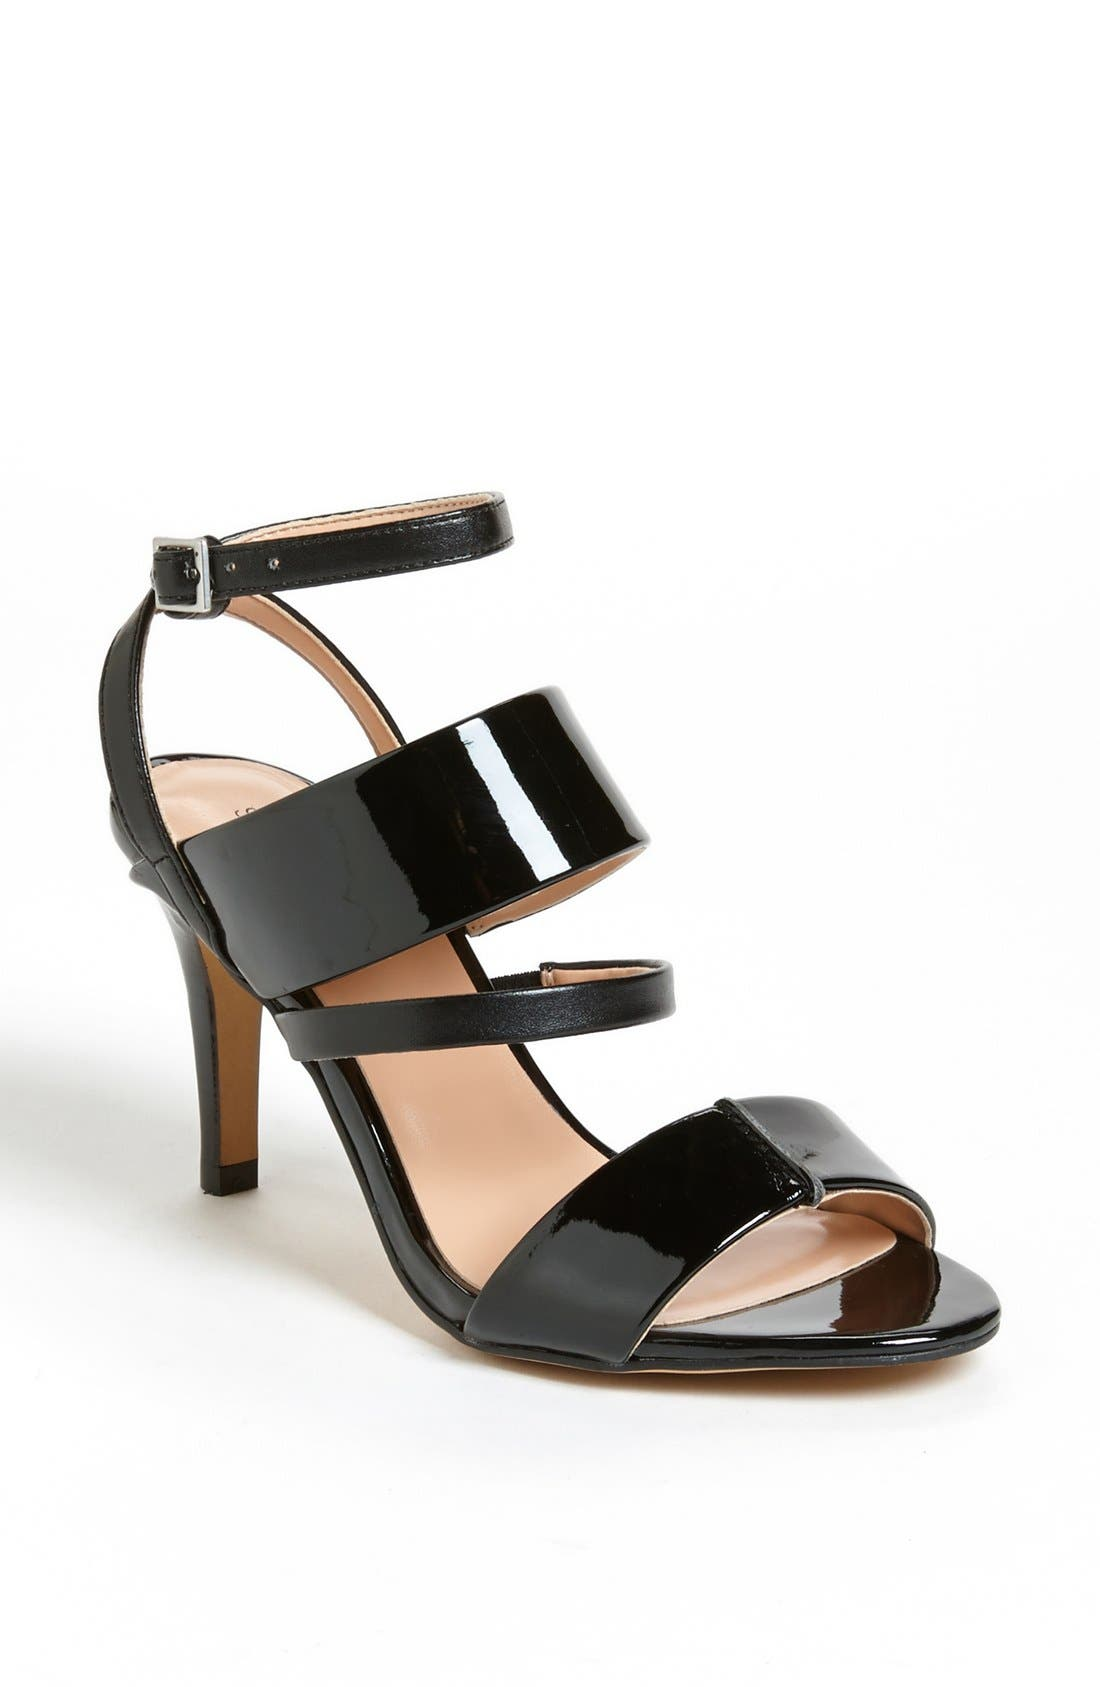 Alternate Image 1 Selected - Sole Society 'Adrie' Sandal